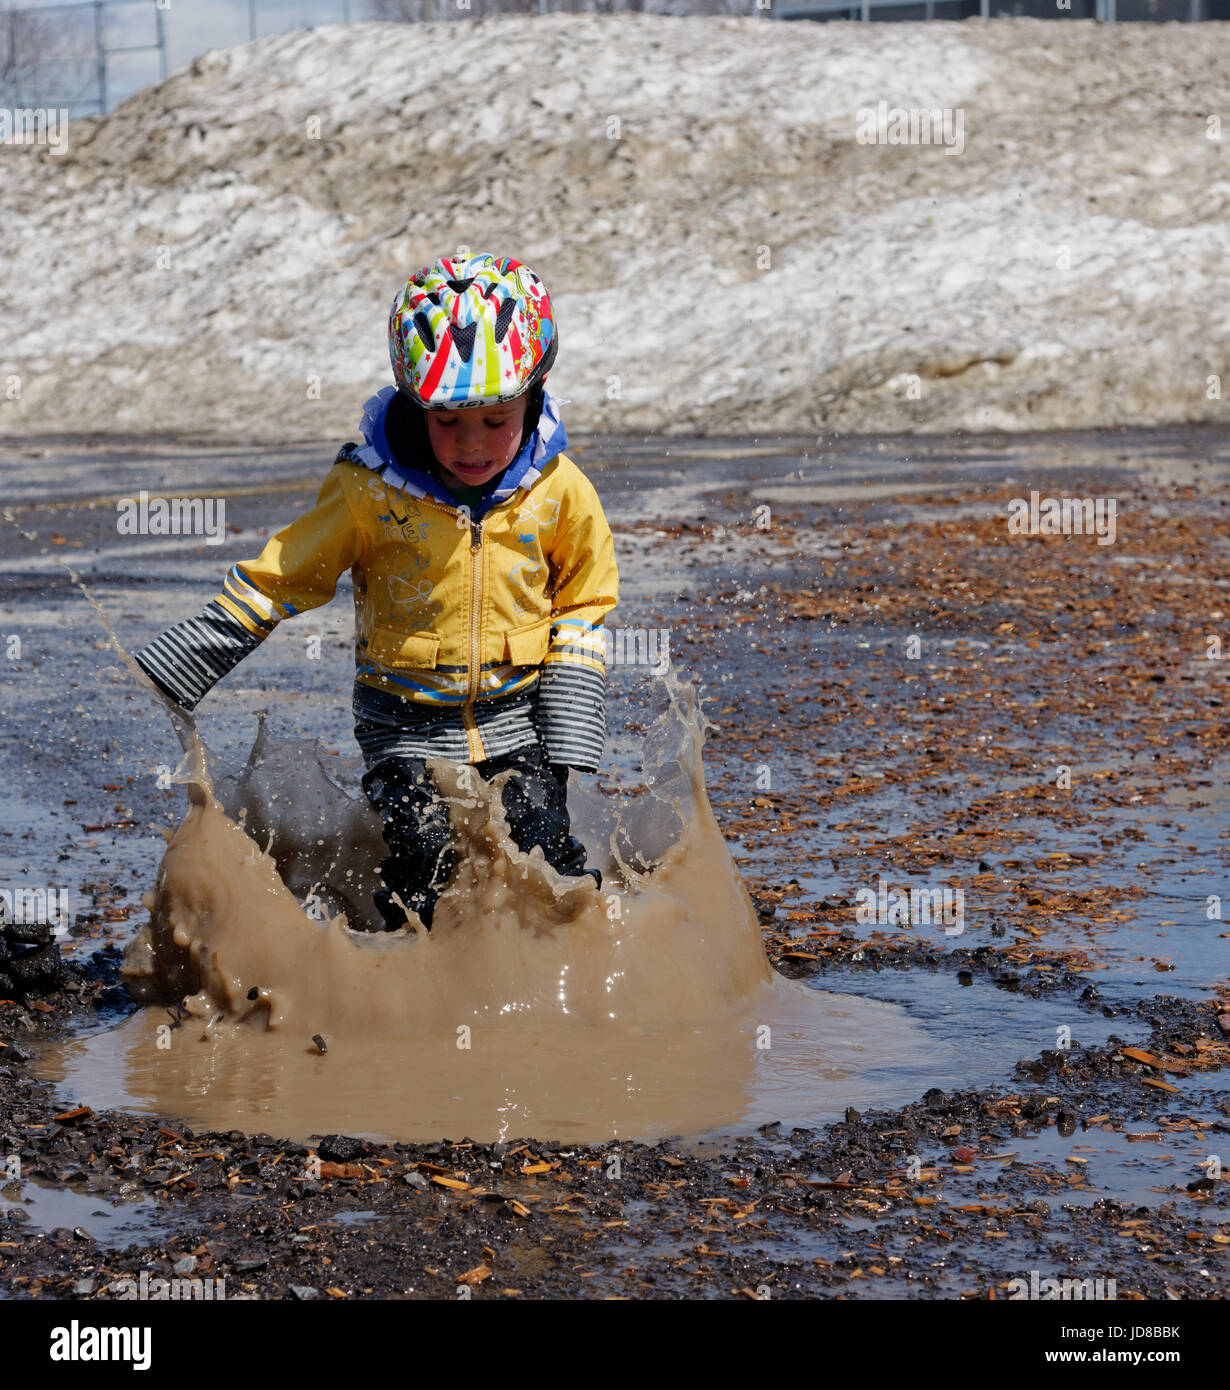 A young boy (5 yrs old) leaping into a muddy puddle. - Stock Image